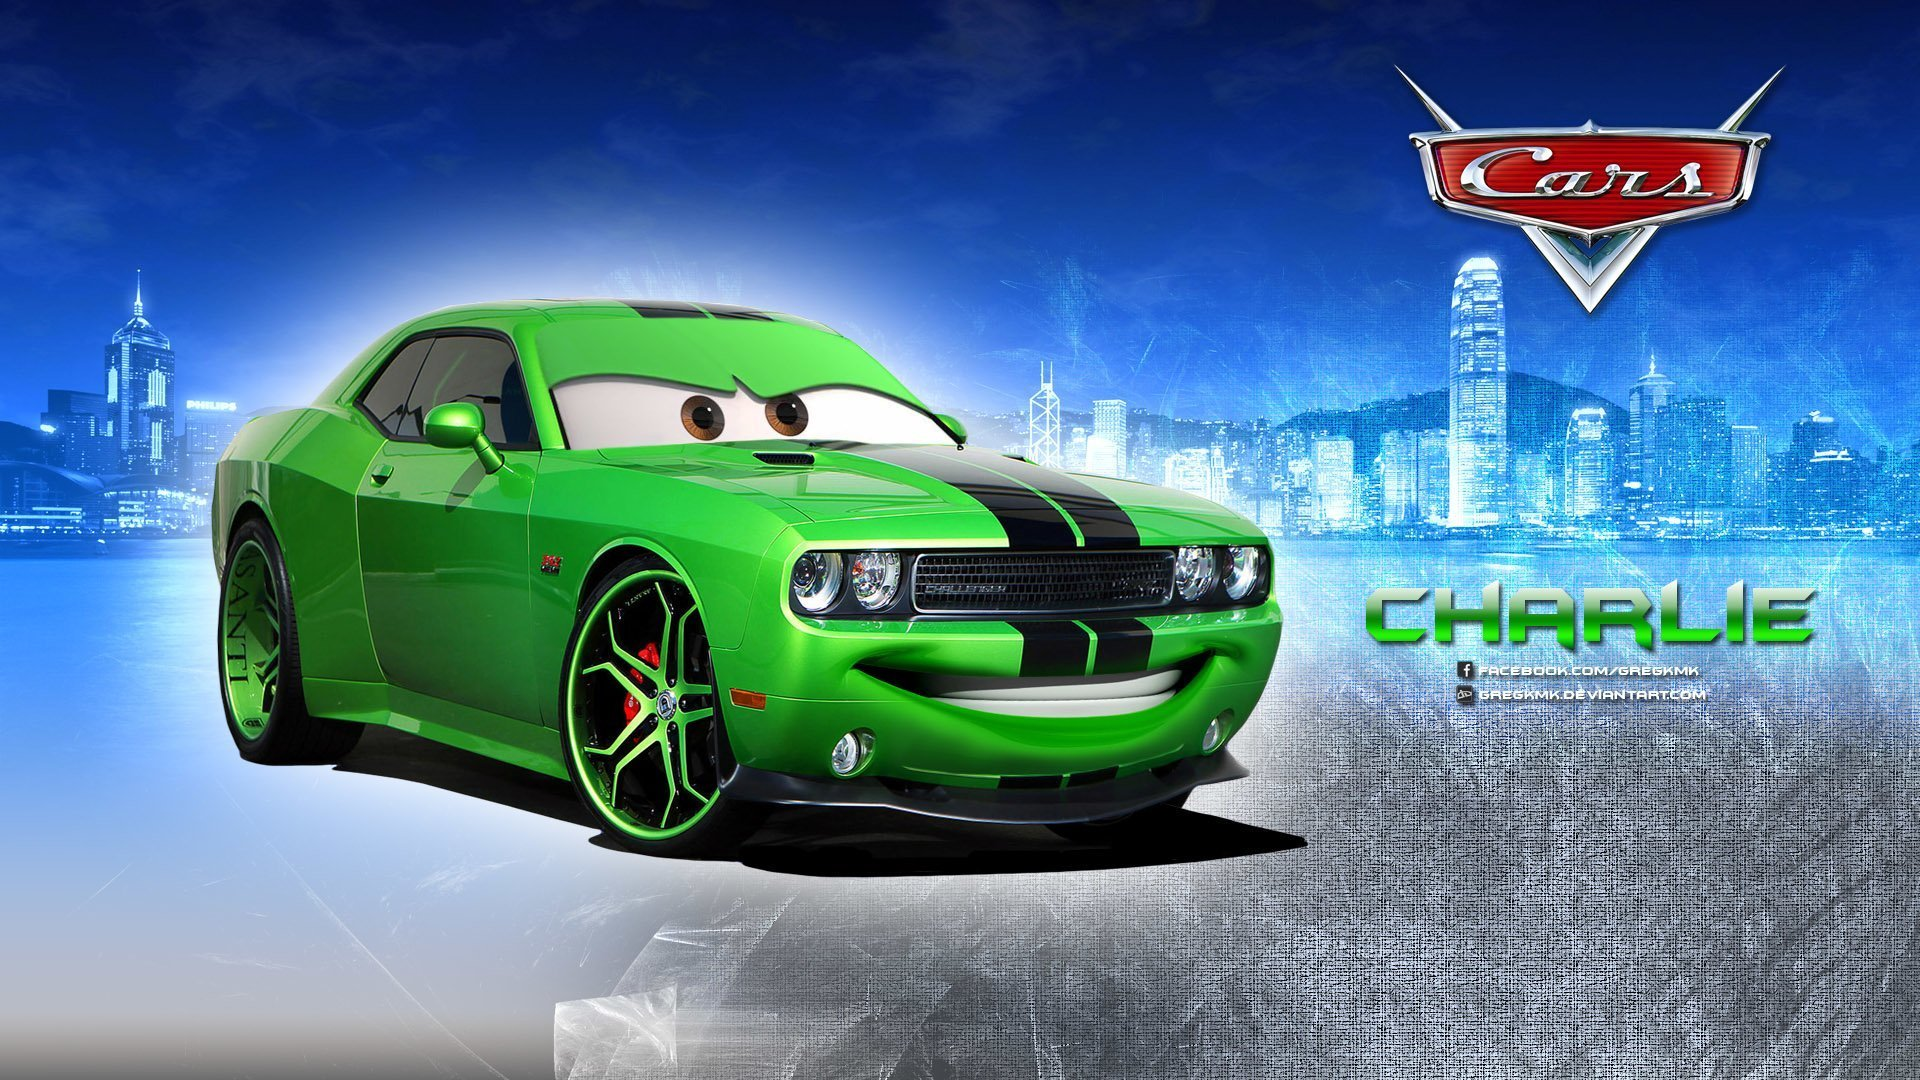 New Cars Charlie Full Hd Wallpaper And Background Image On This Month